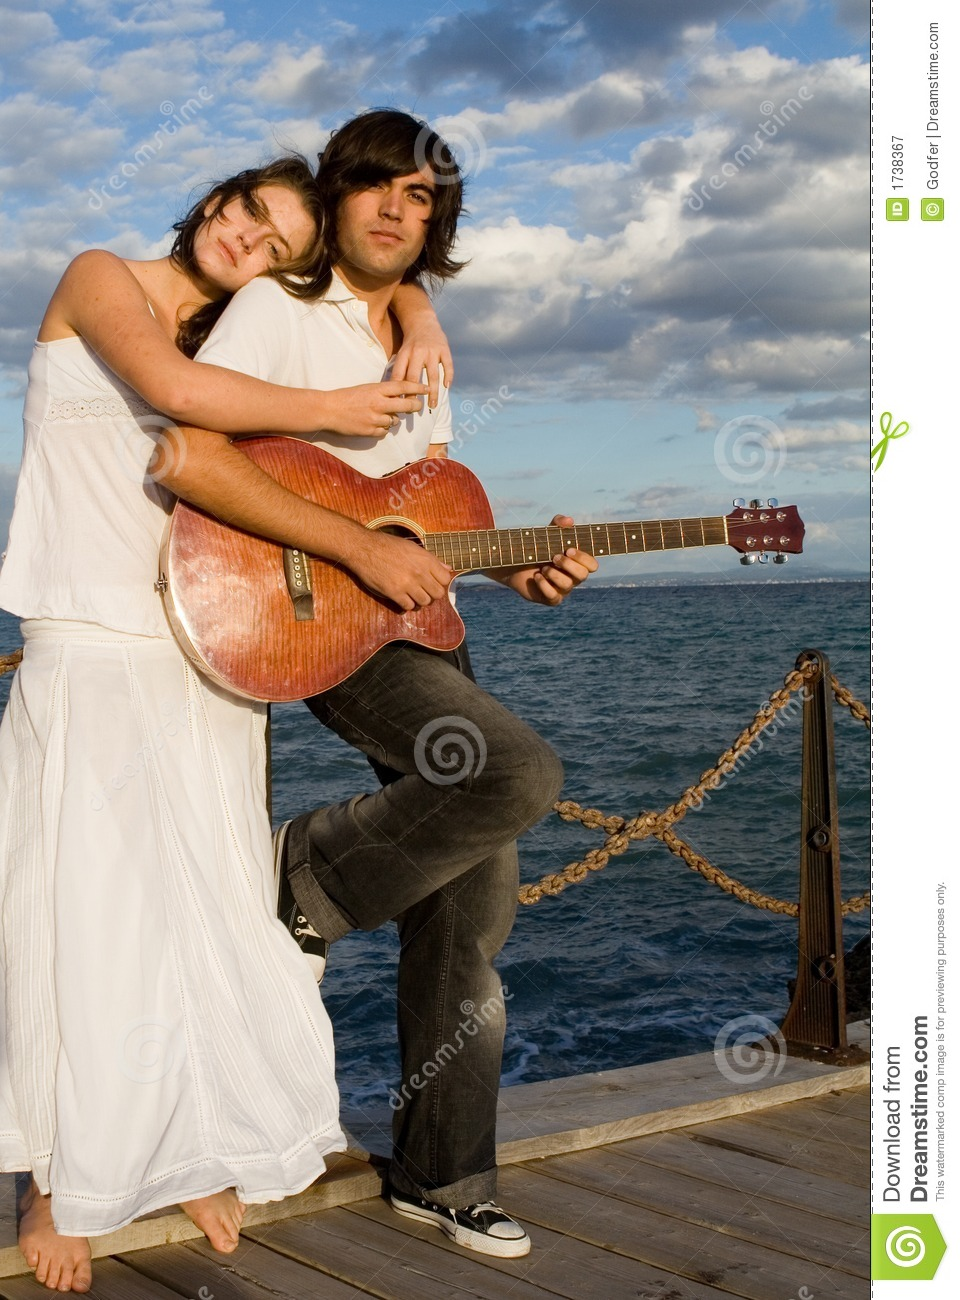 Chinese Girl Wallpapers Hd Couple Playing Guitar Royalty Free Stock Photography